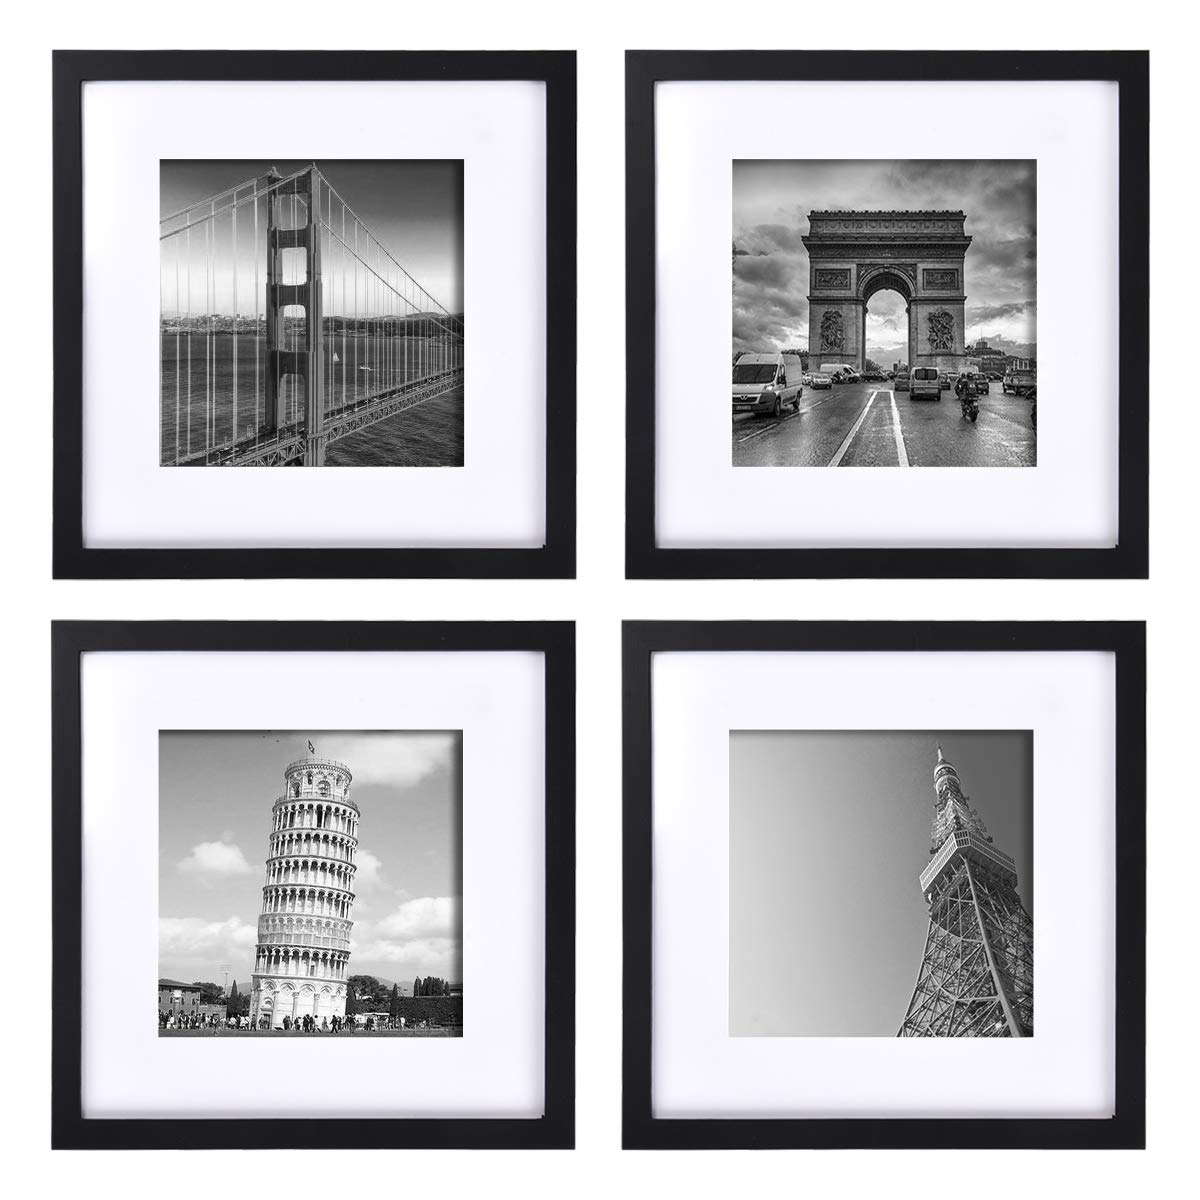 wenmer 12x12 Picture Frame Black Gallery Picture Frames with Mat to 8x8 for Wall Mount or Table Top 4 Pack by wenmer